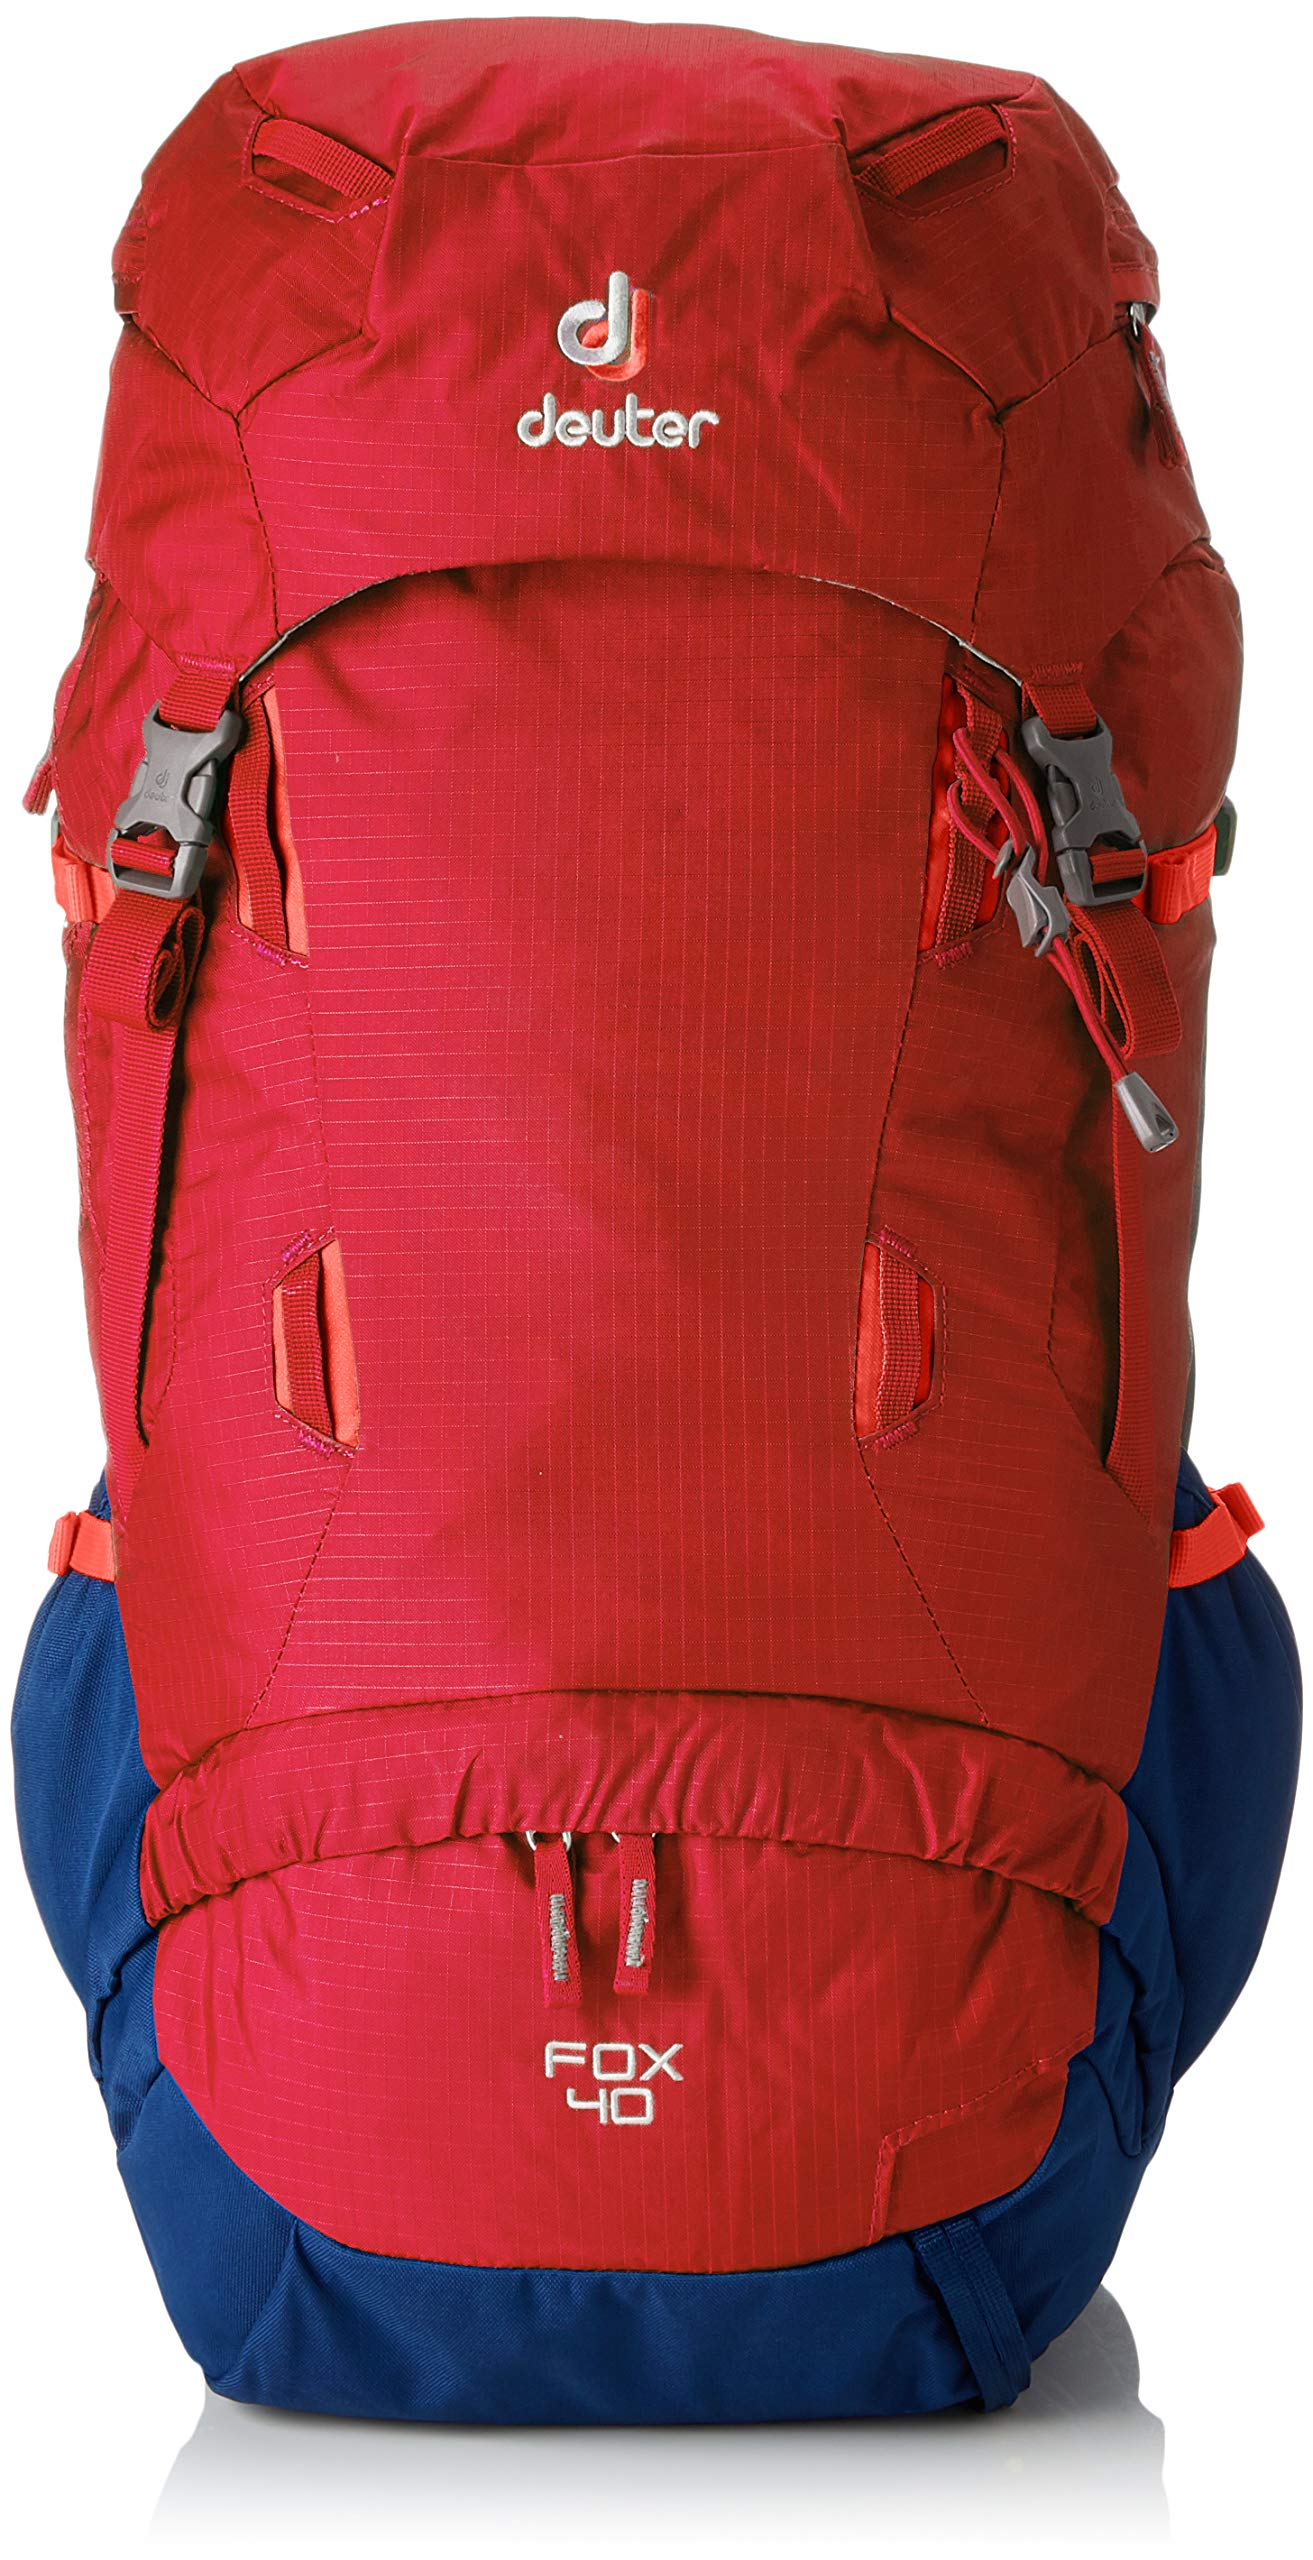 Deuter Fox 40, Cranberry/Steel